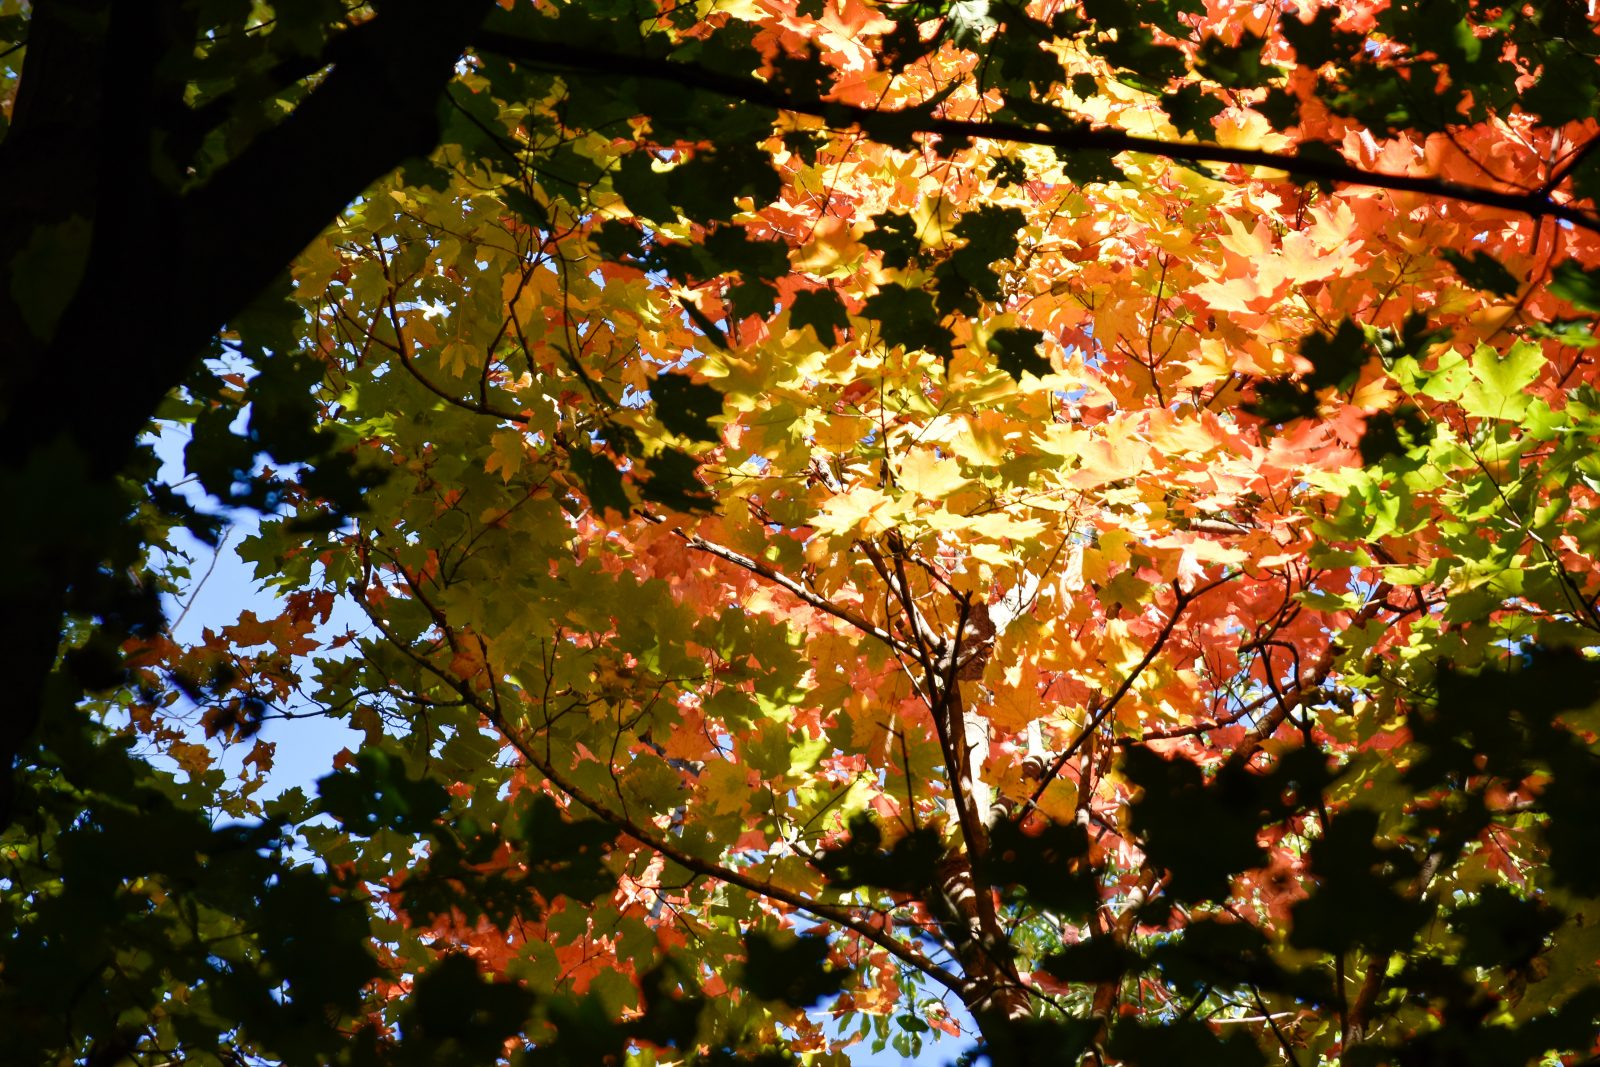 Start of Fall Seen Looking Up at Maple Tree